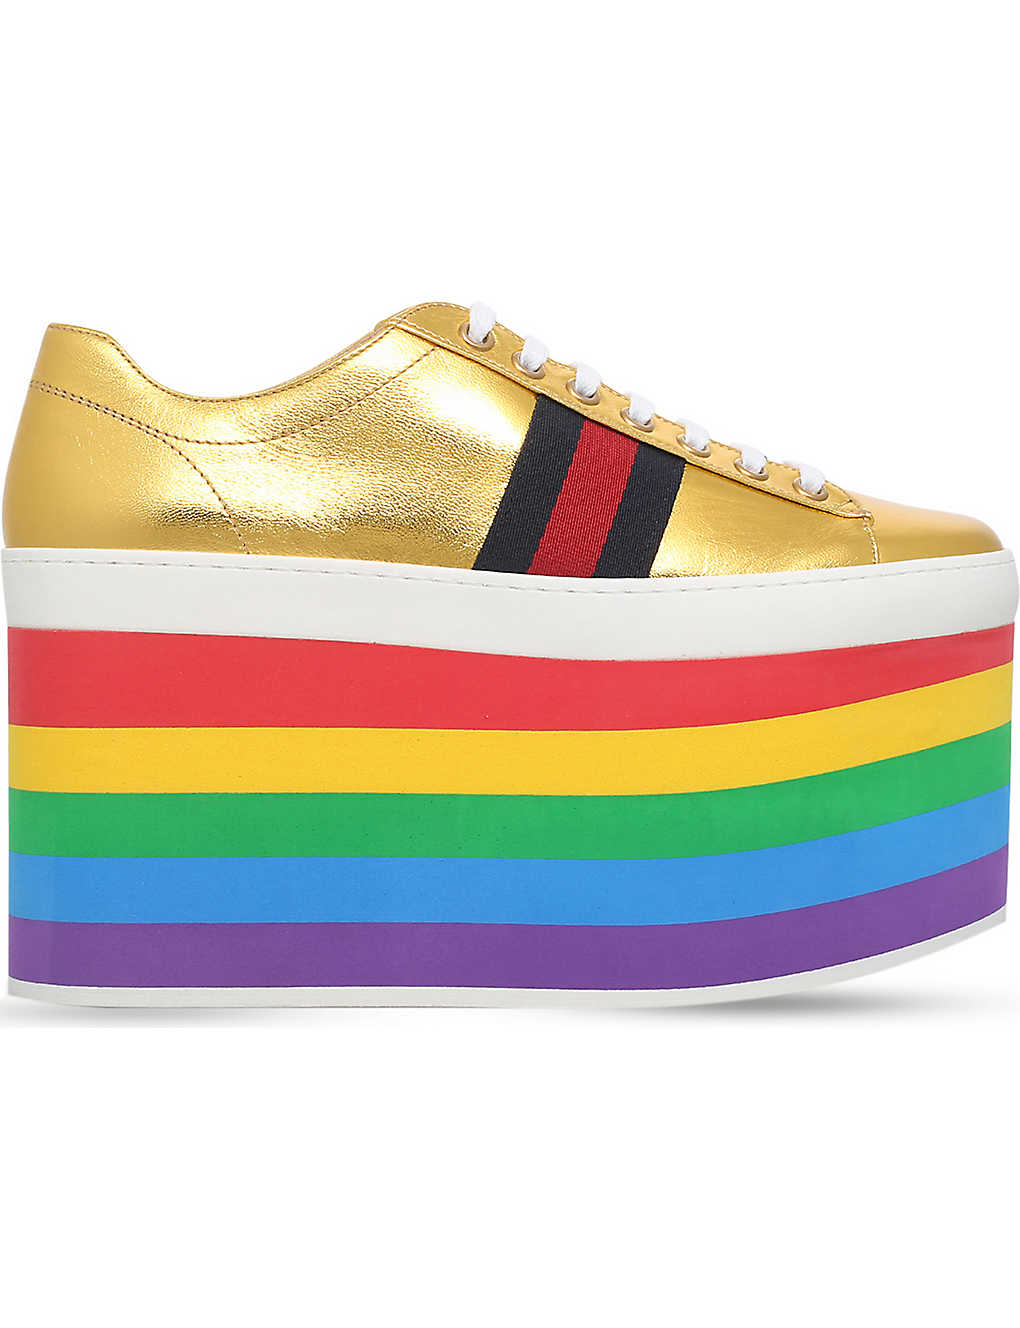 208b84cc46c ... Peggy rainbow leather platform trainers zoom ...